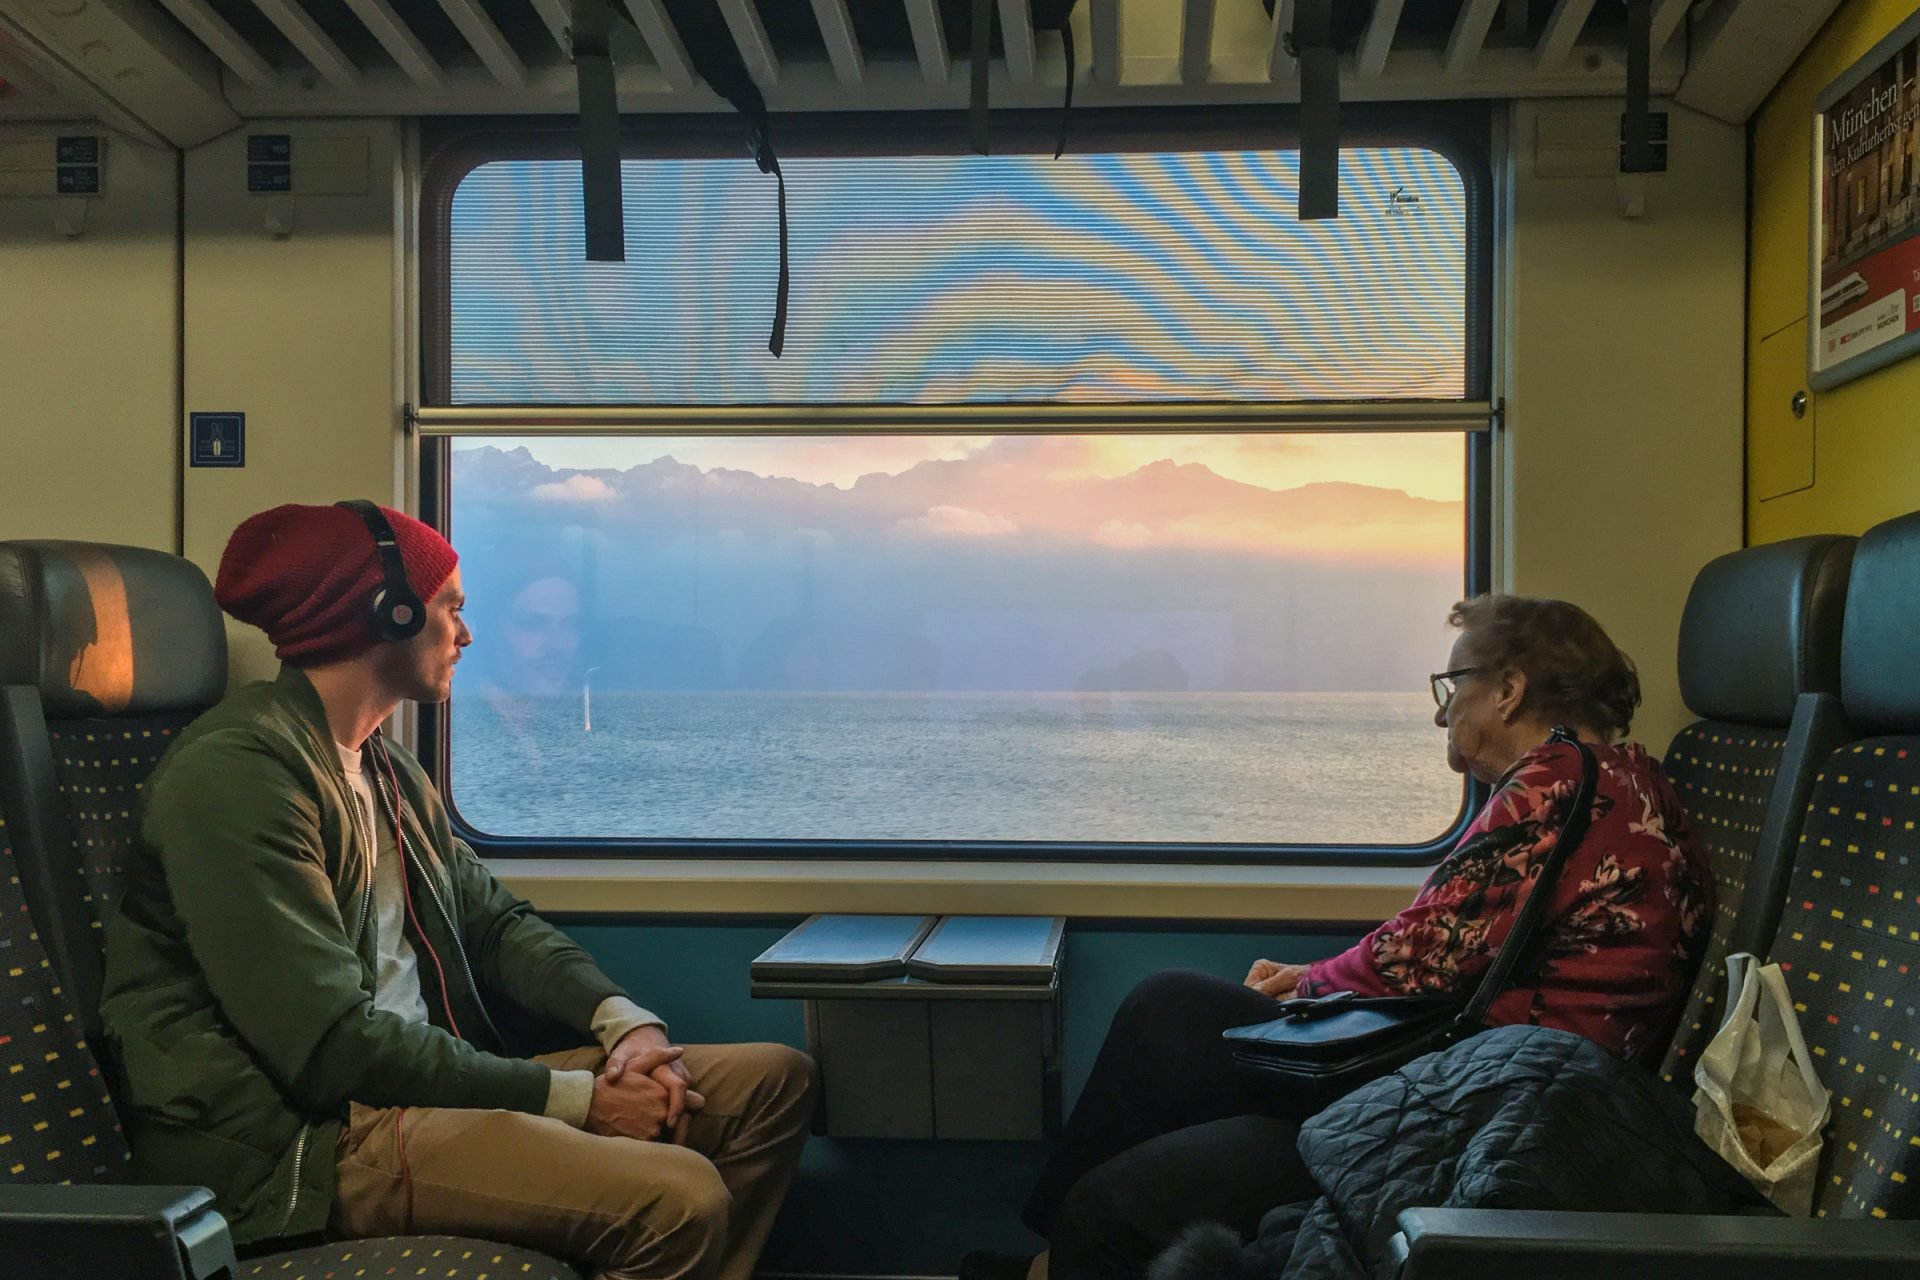 Young Man & Elderly Woman on Train